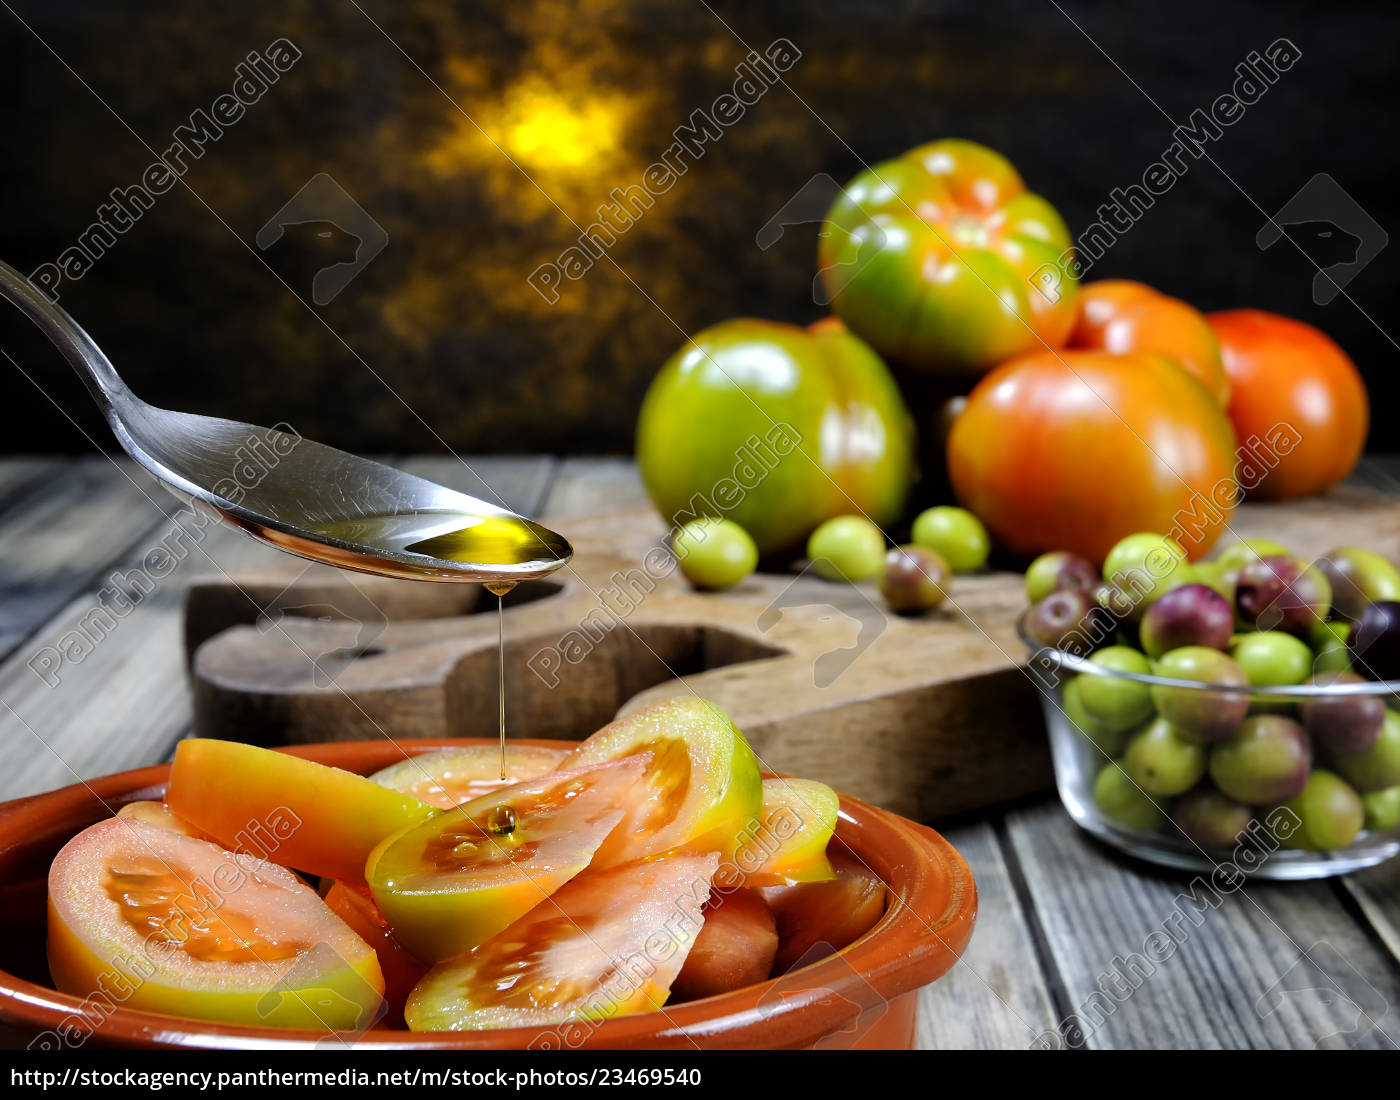 tomato, salad, dressed, with, extra, virgin - 23469540